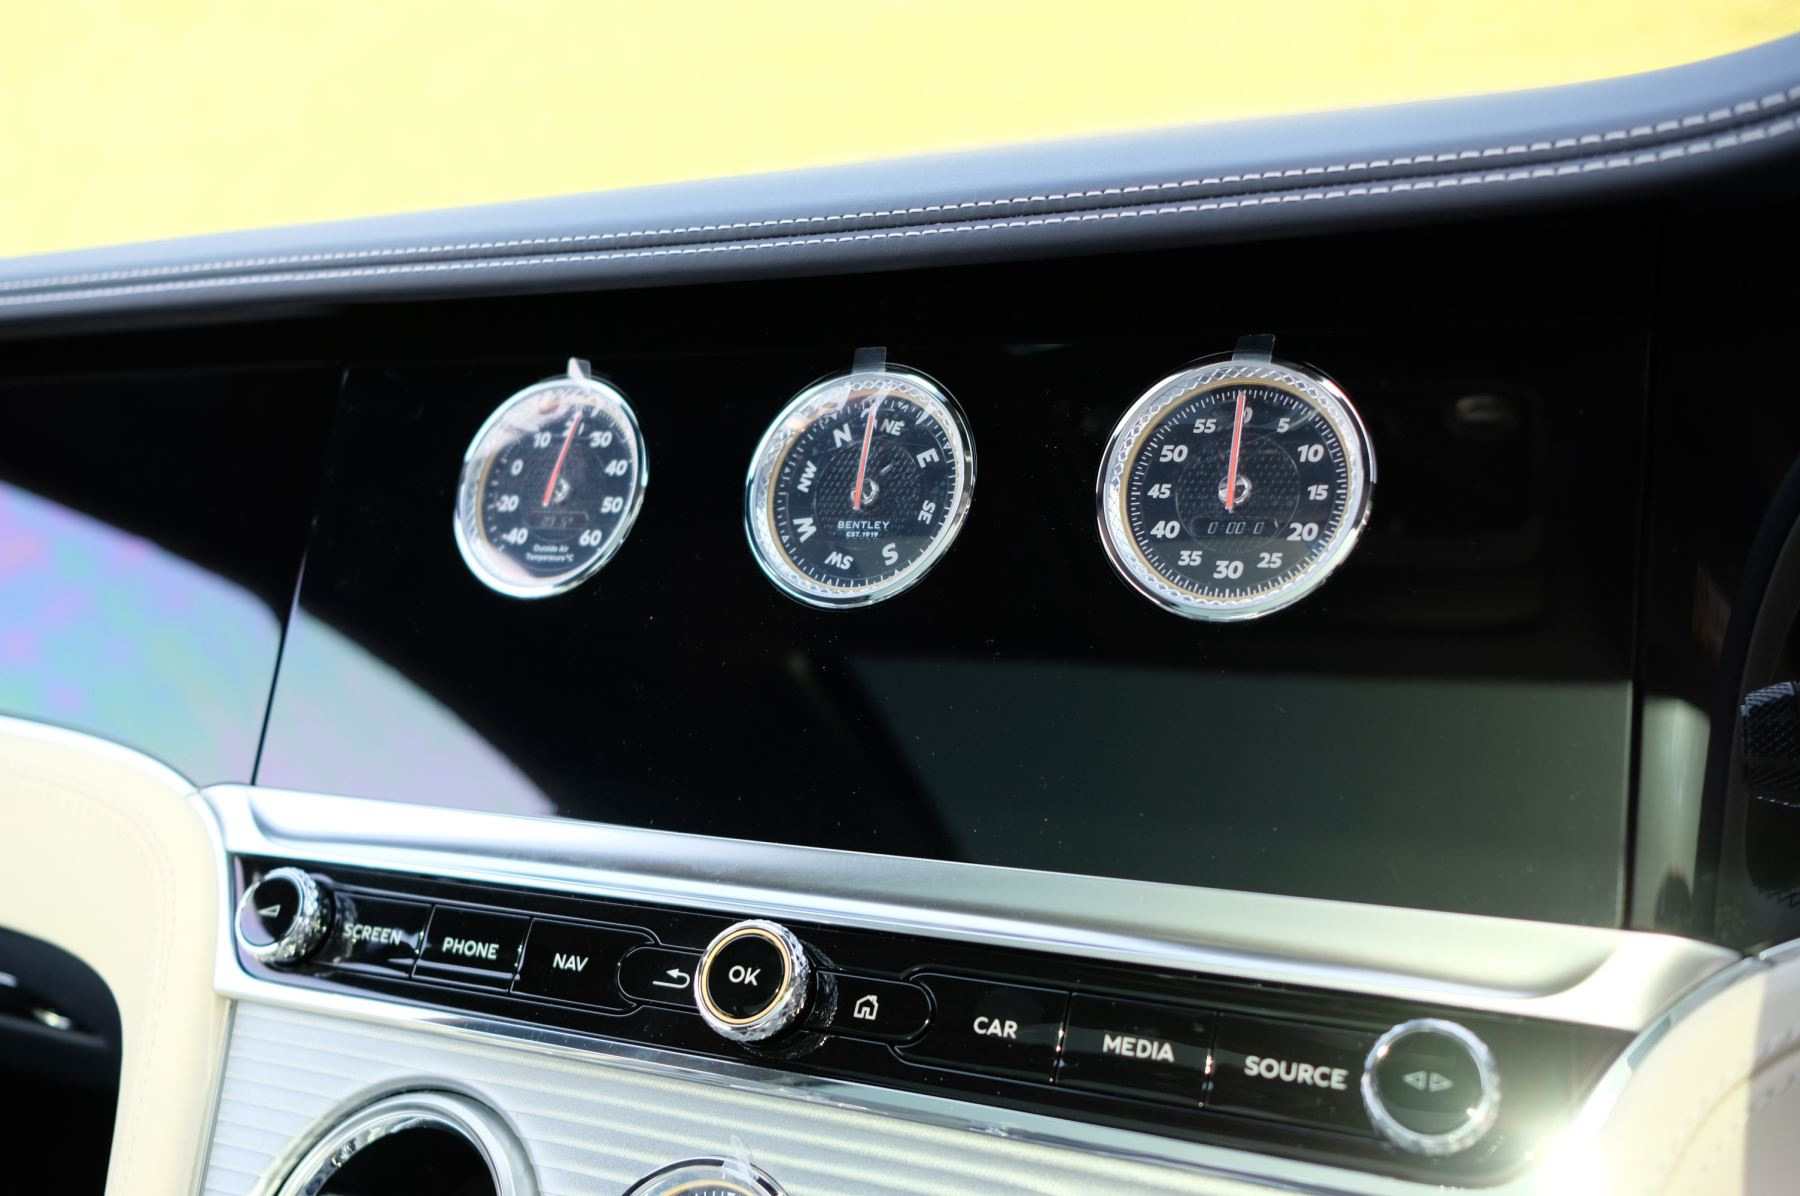 Bentley Continental GT 4.0 V8 Mulliner Edition 2dr Auto - City Specification - Panoramic Glass Roof image 20